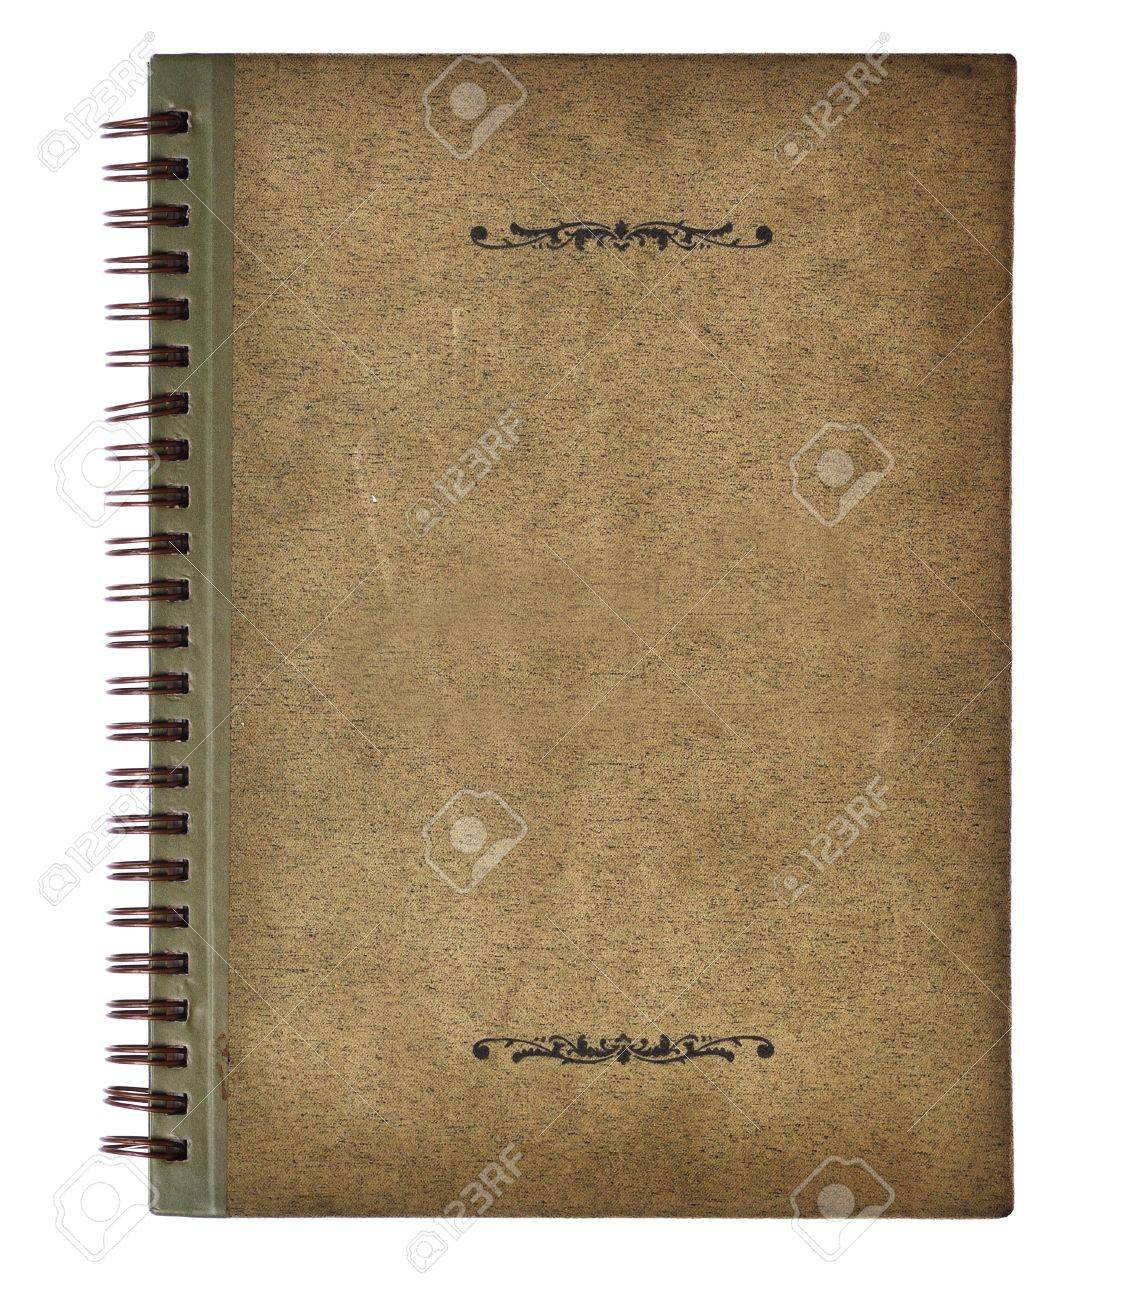 Old vintage notebook cover Stock Photo - 12135408